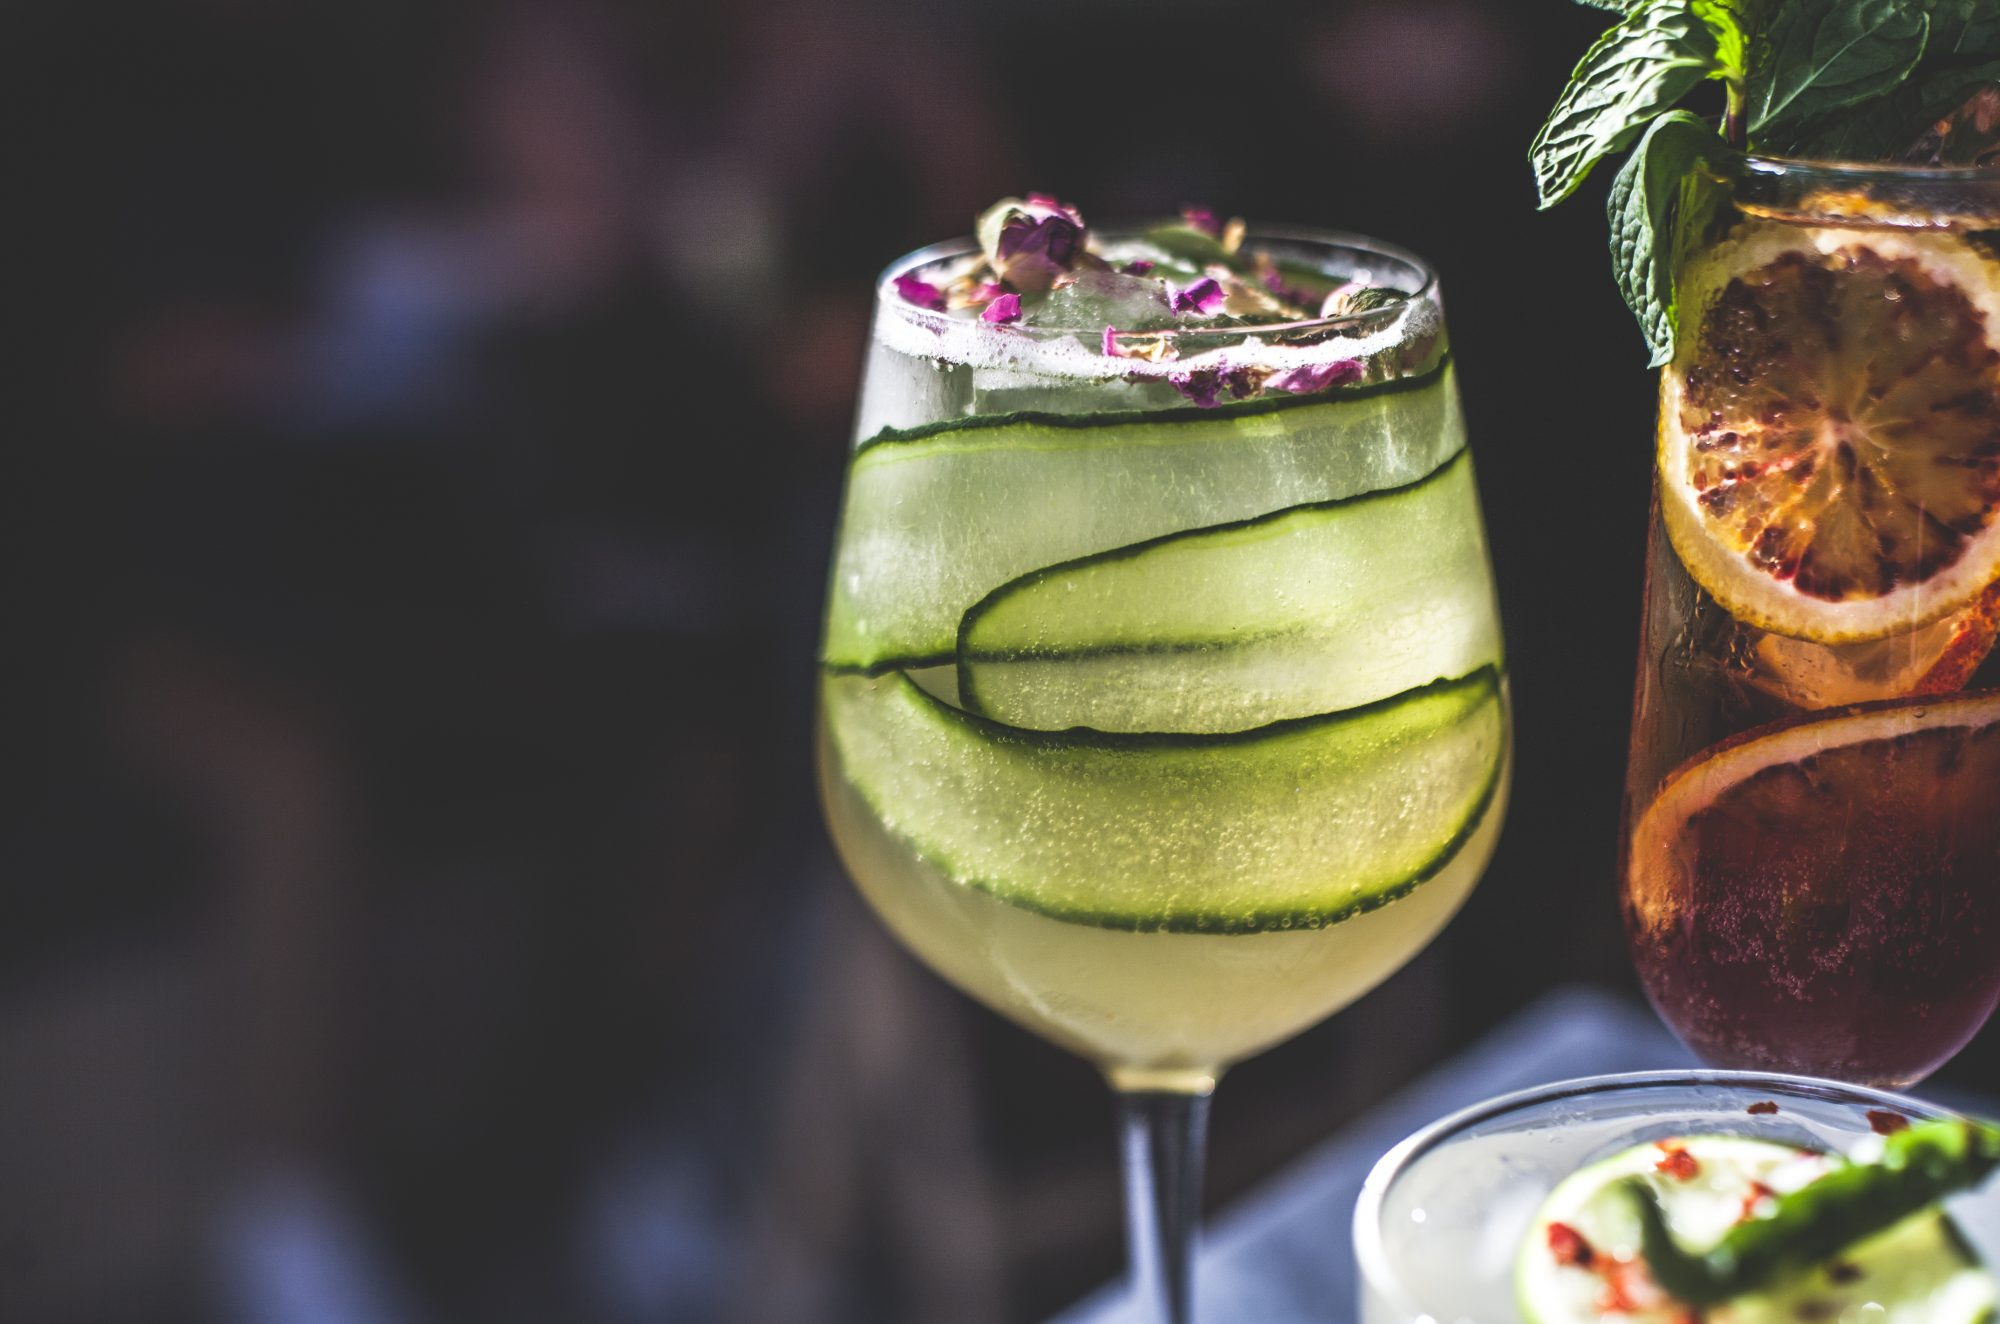 8 Low-Calorie Cocktails That Will Help You Stick to Your Healthy Eating Goals